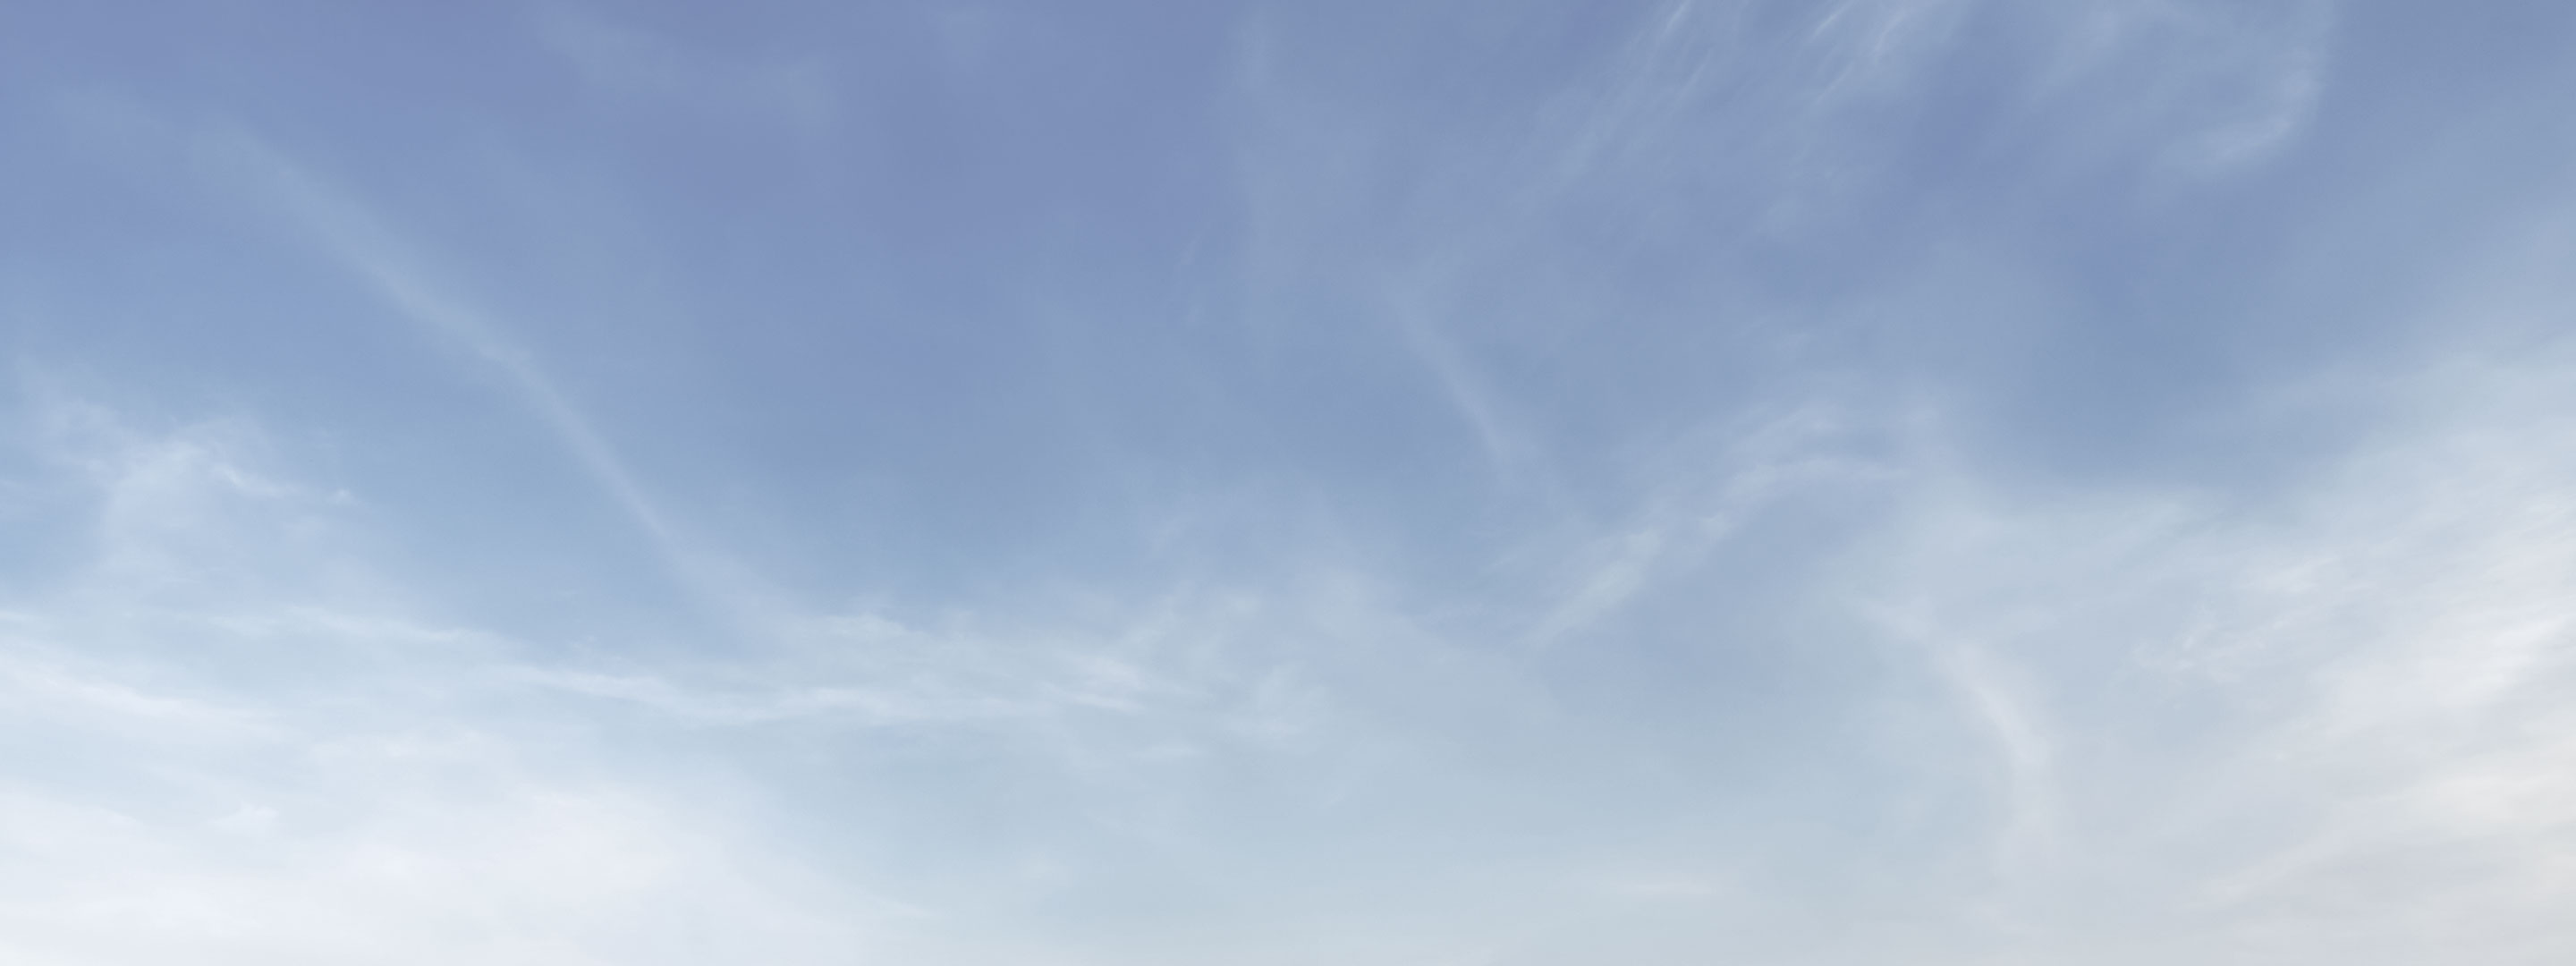 Sky with soft clouds